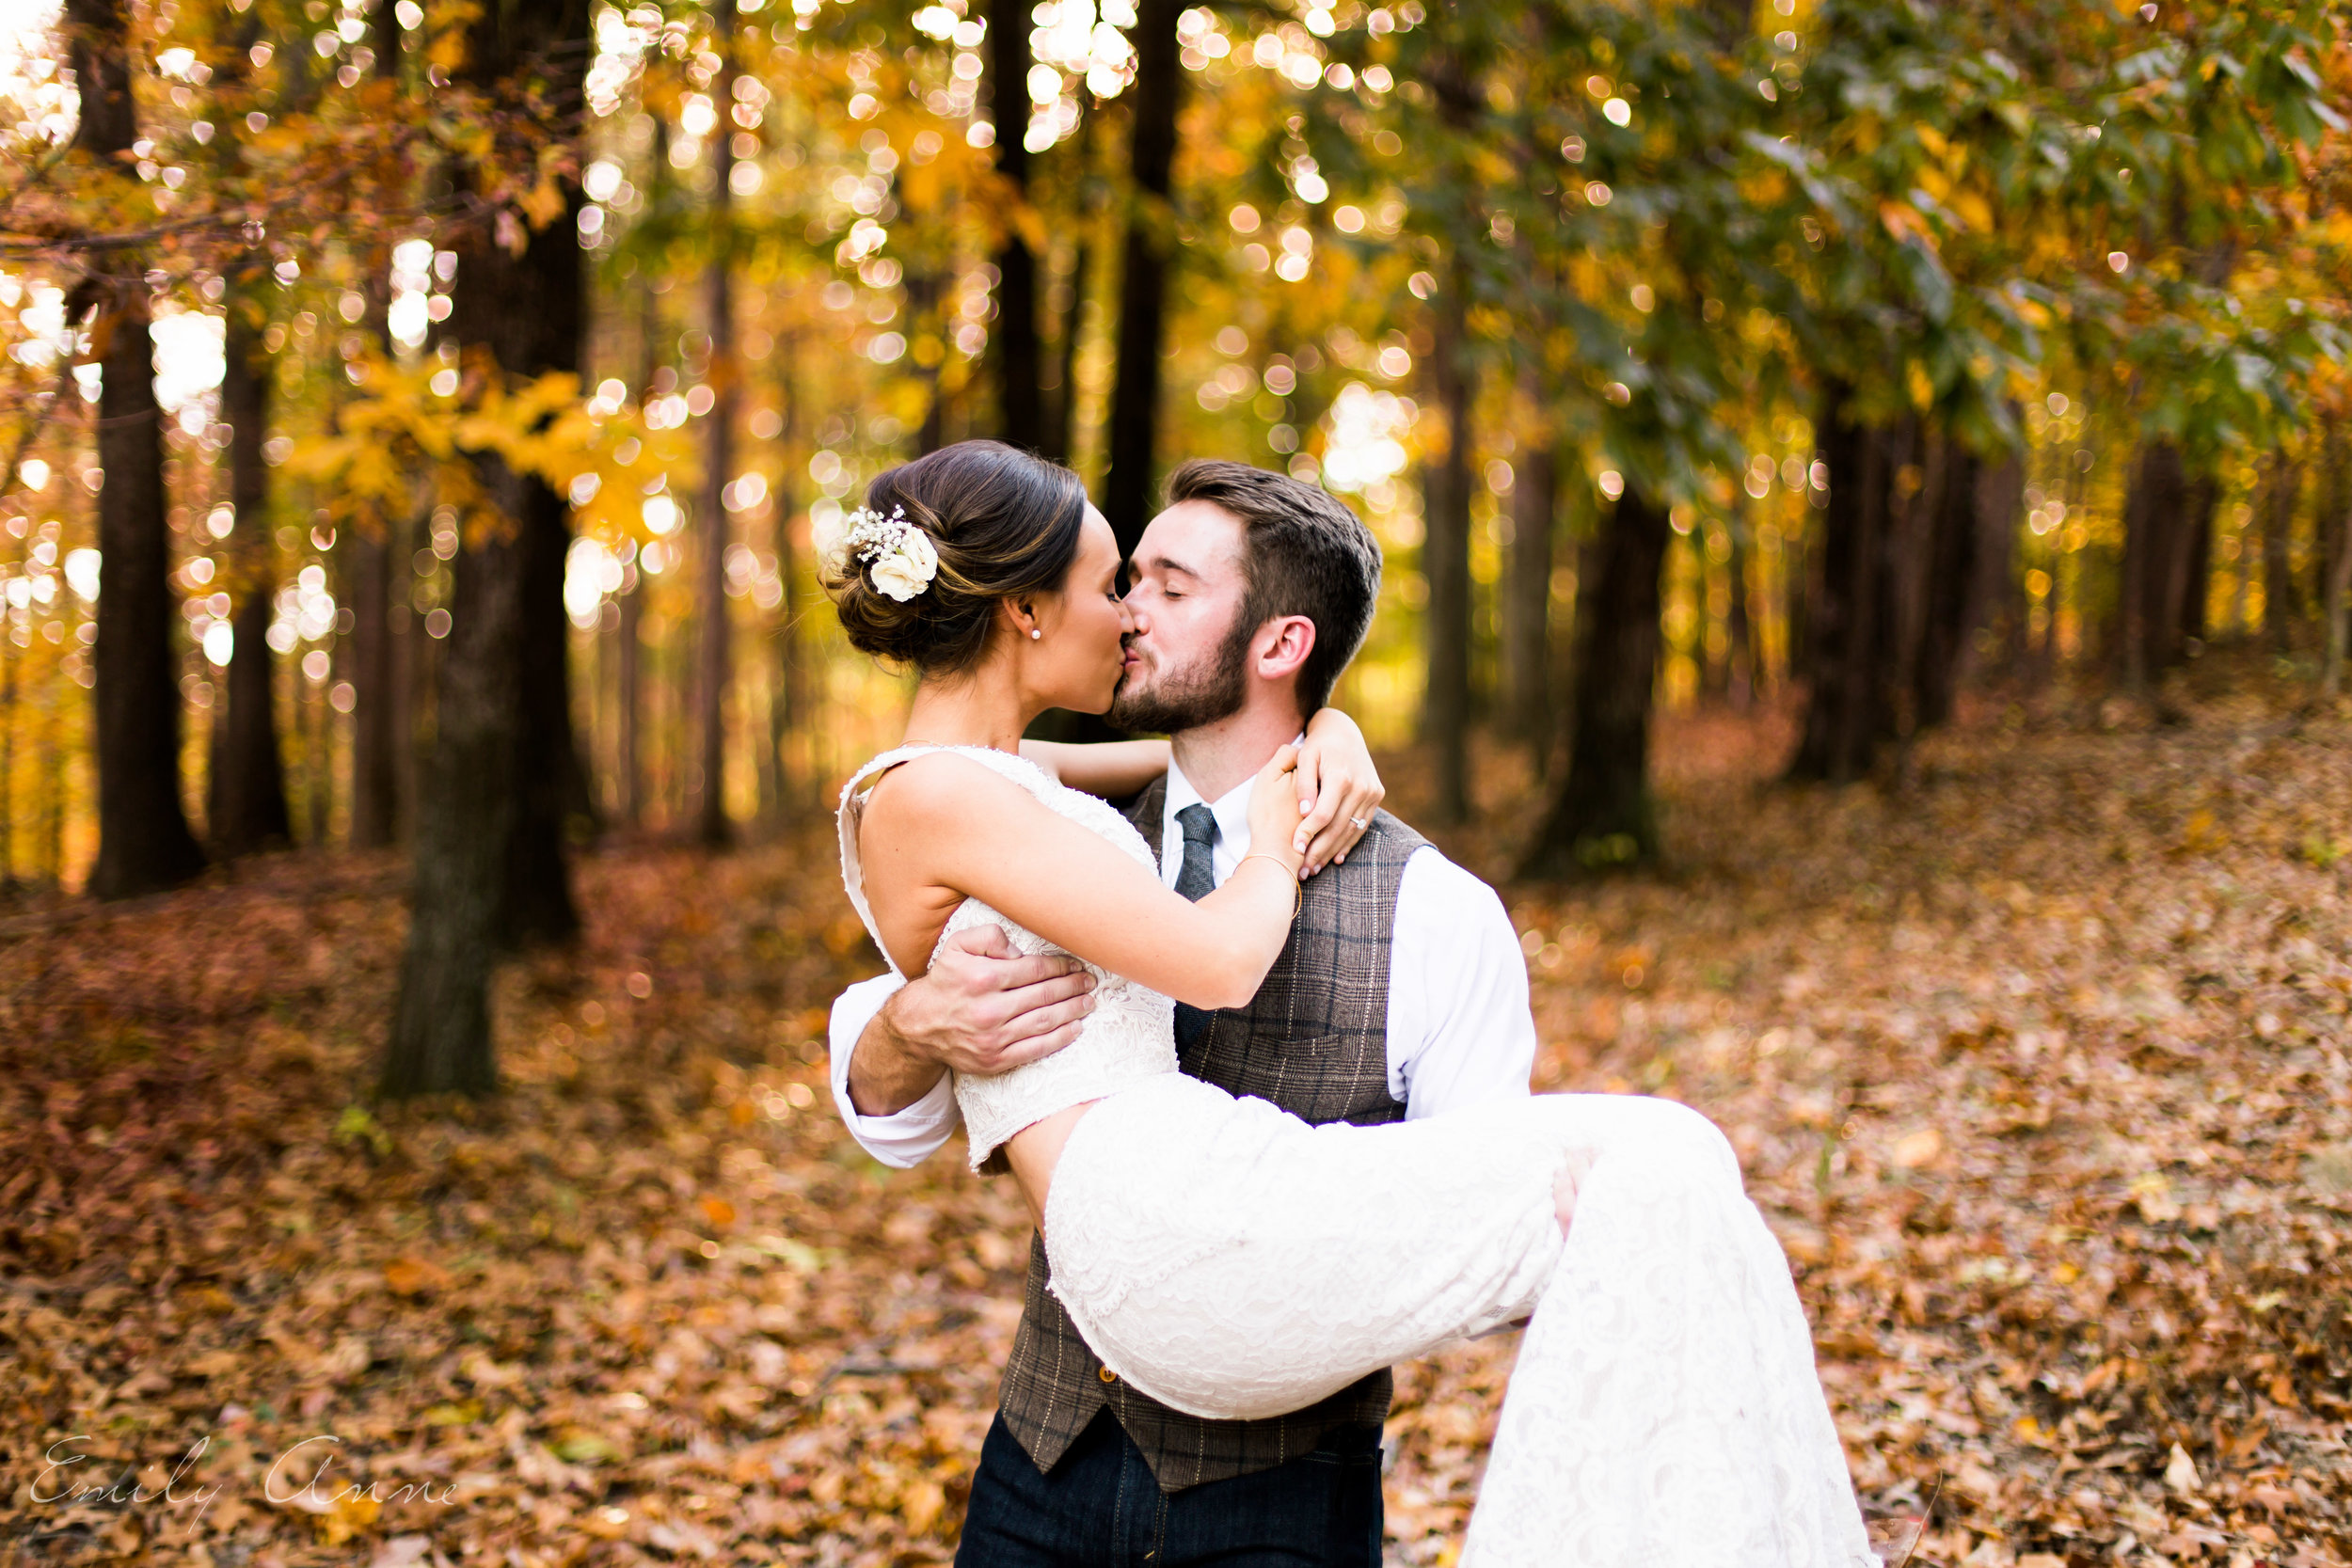 best nashville wedding photographer emily anne shot in Leiper's fork venue middle tn